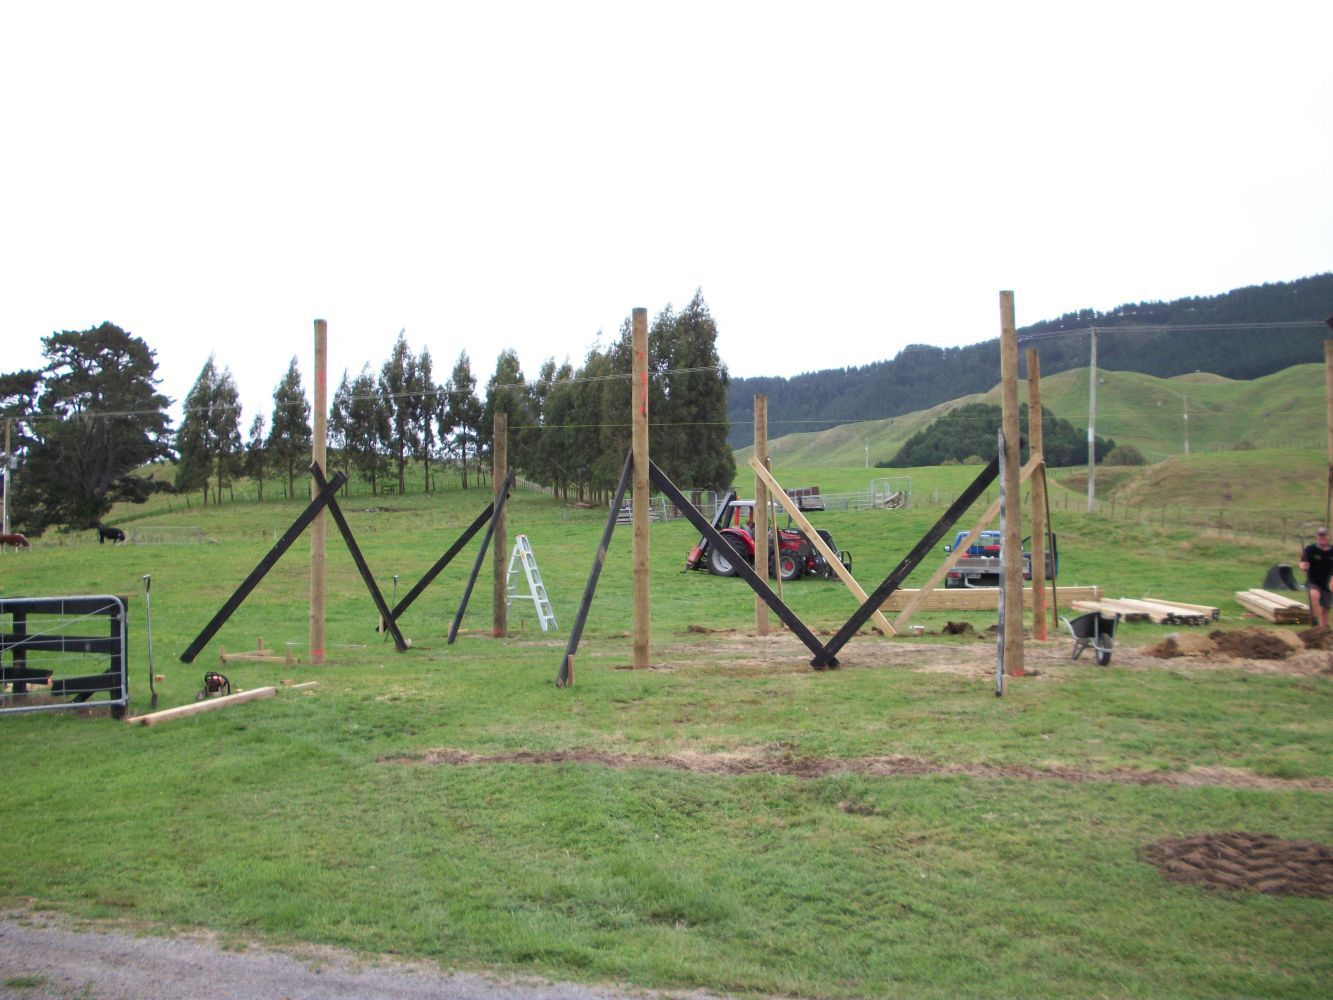 Fence built by building services in Waikato